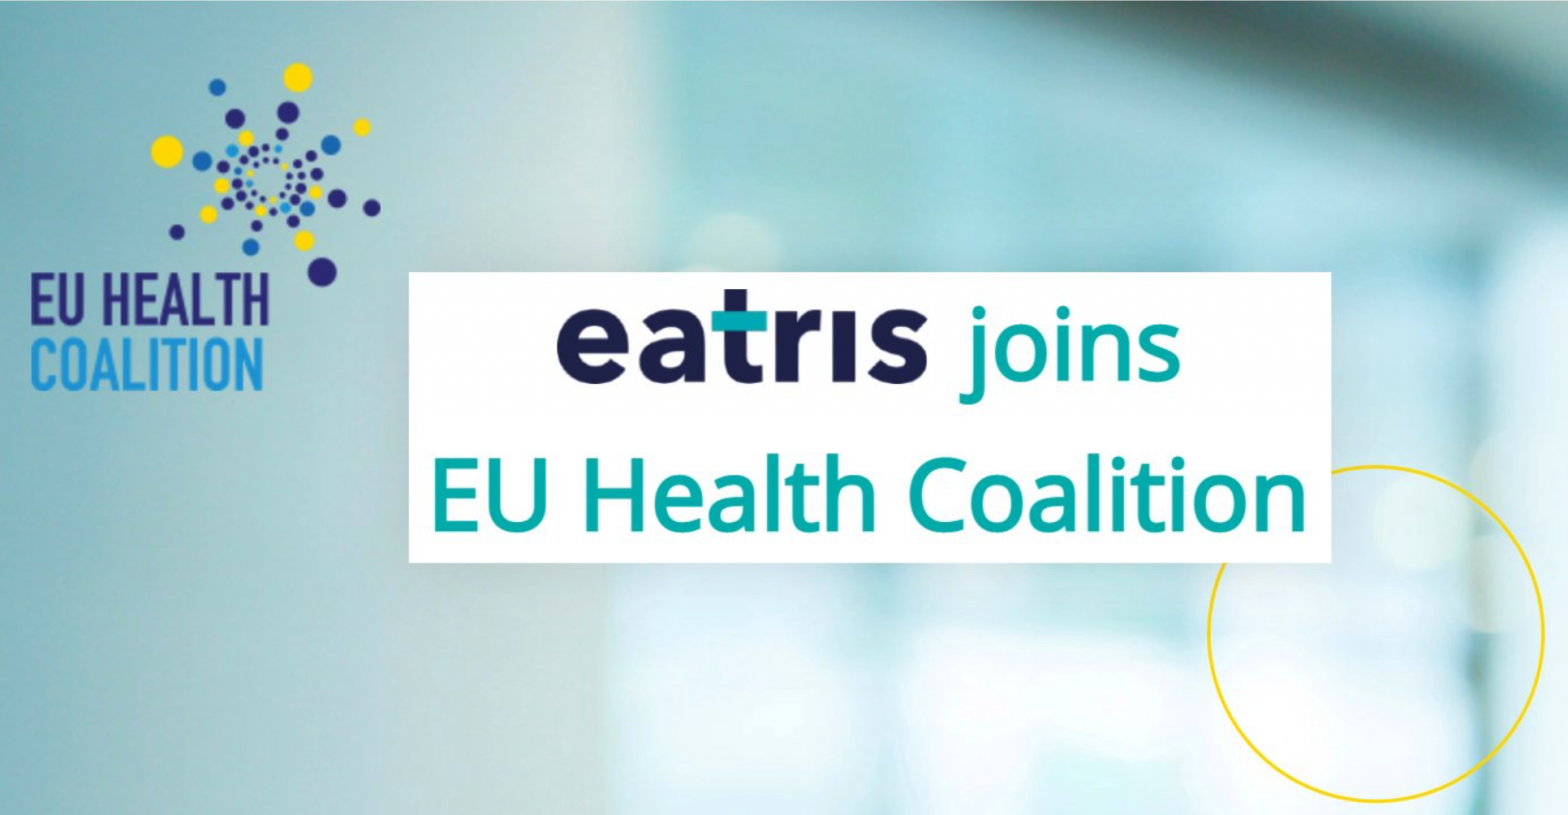 EATRIS joins the EU Health Coalition